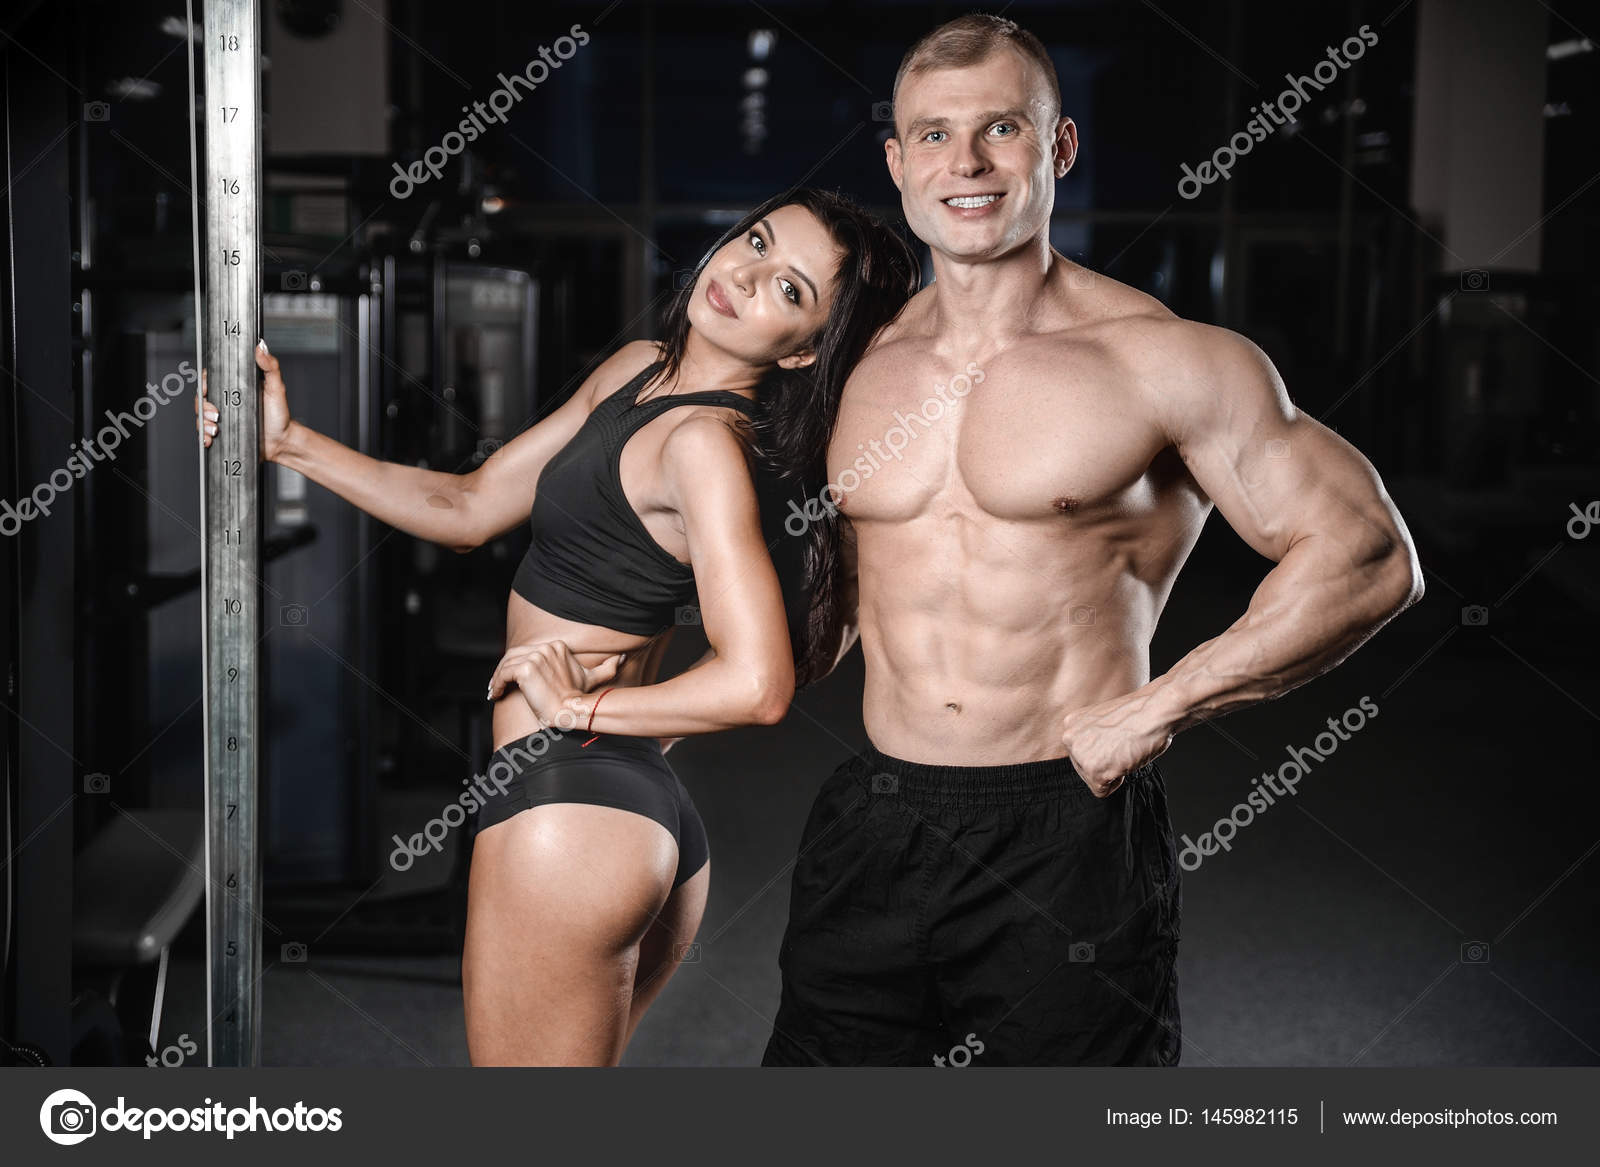 Muscle joy in the gym